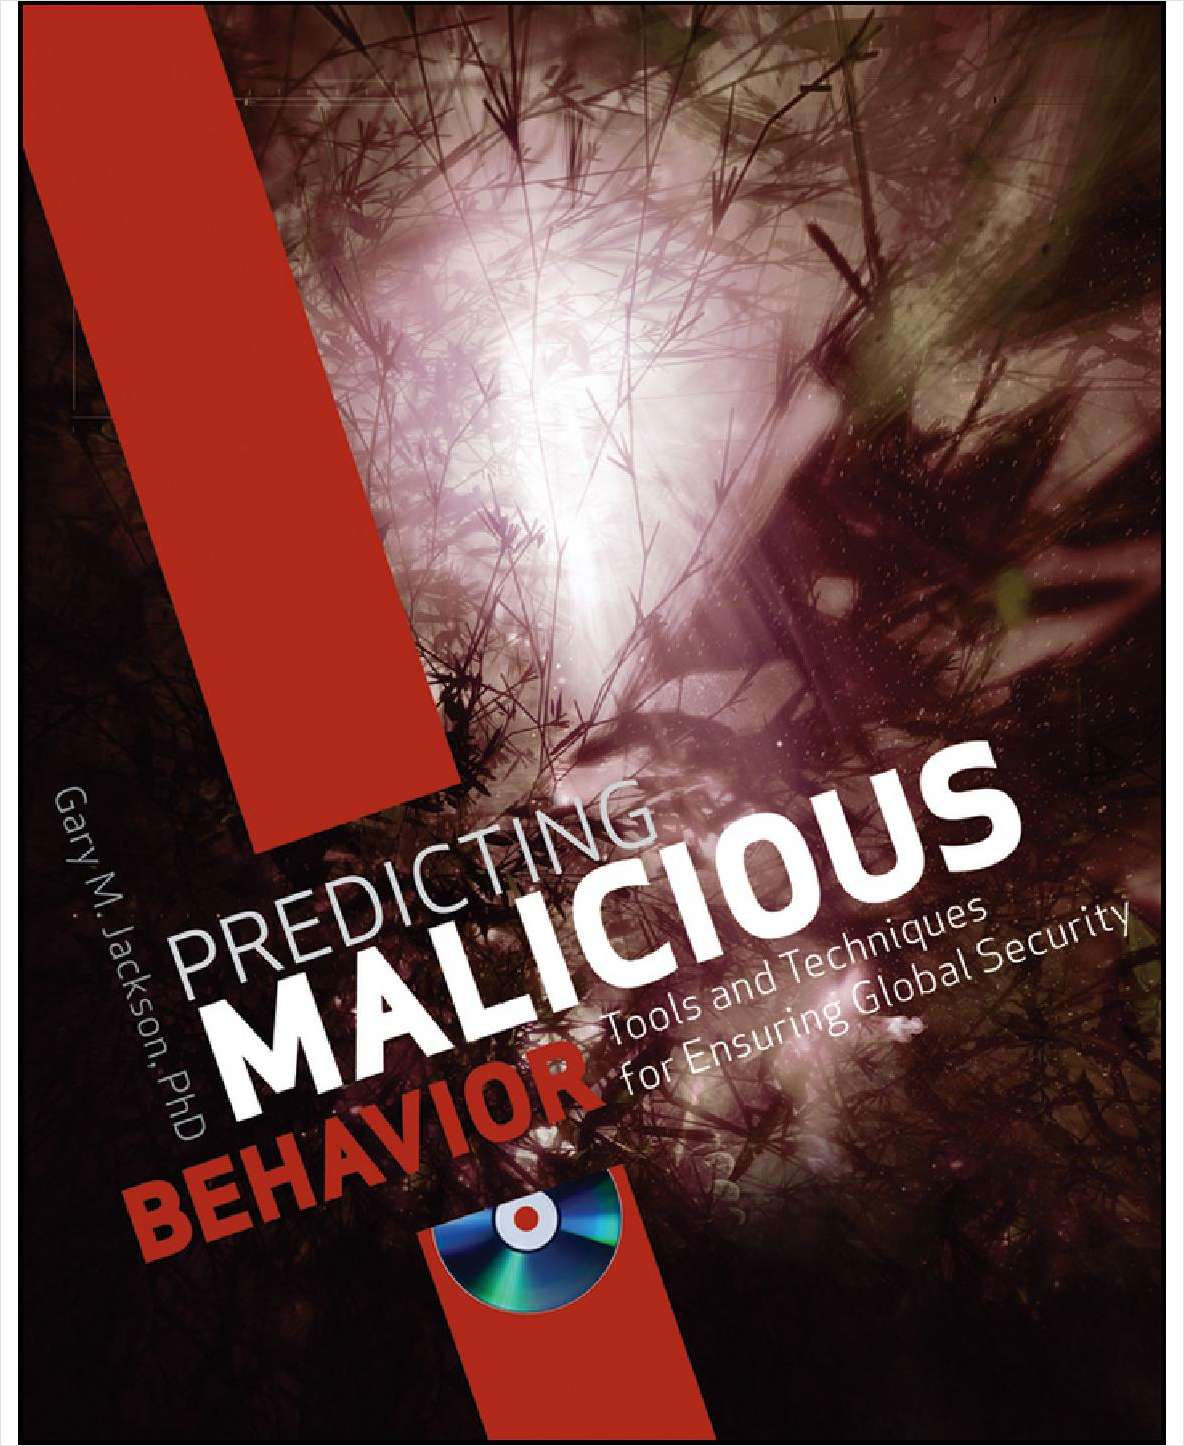 Predicting Malicious Behavior: Tools and Techniques for Ensuring Global Security (Free Sample Chapter) Screenshot